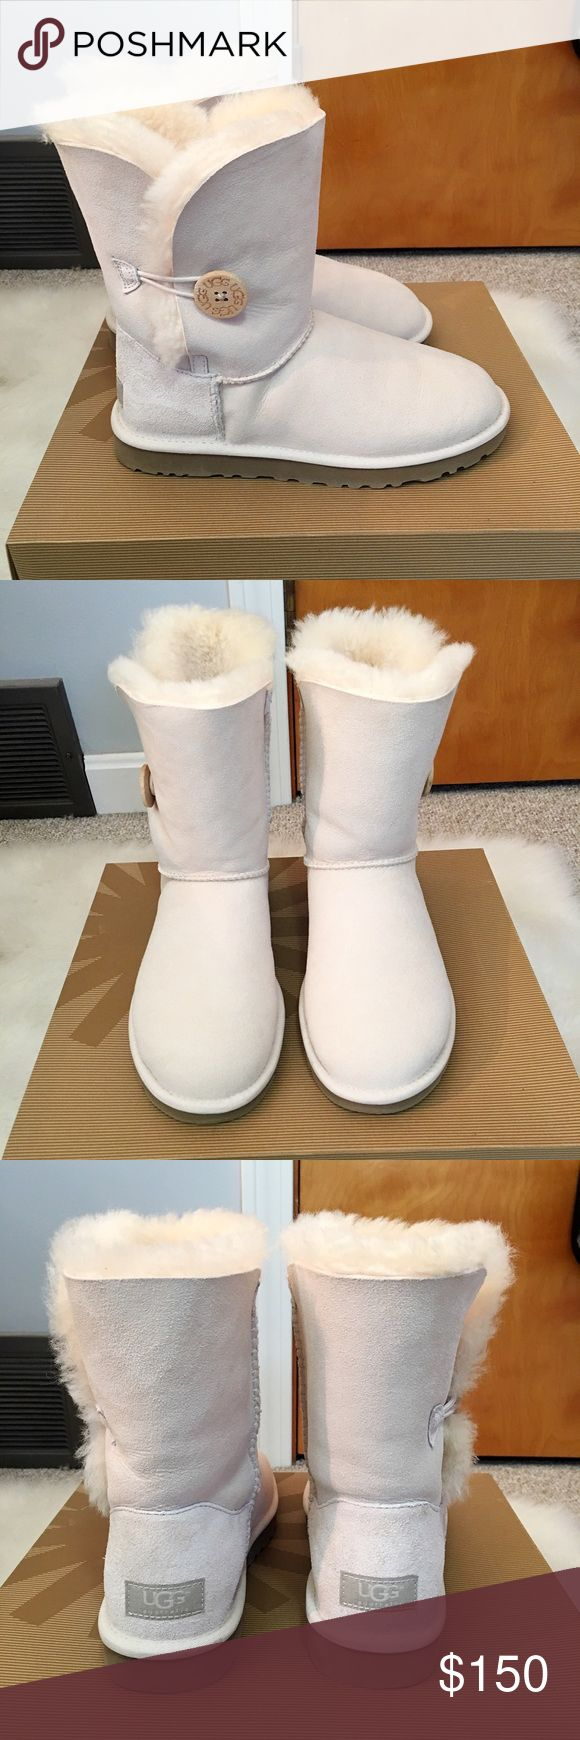 Ugg Bailey Button Boots in White/Cream Ugg Bailey Button Boots in White/Cream Size 7, worn once to try them on (not outside). As you can see by the bottom of the boots, they are in perfect condition. The color is a creamy white. I also treated them with the Ugg Water/Stain Repellent protective spray. Comes with original box UGG Shoes Winter & Rain Boots